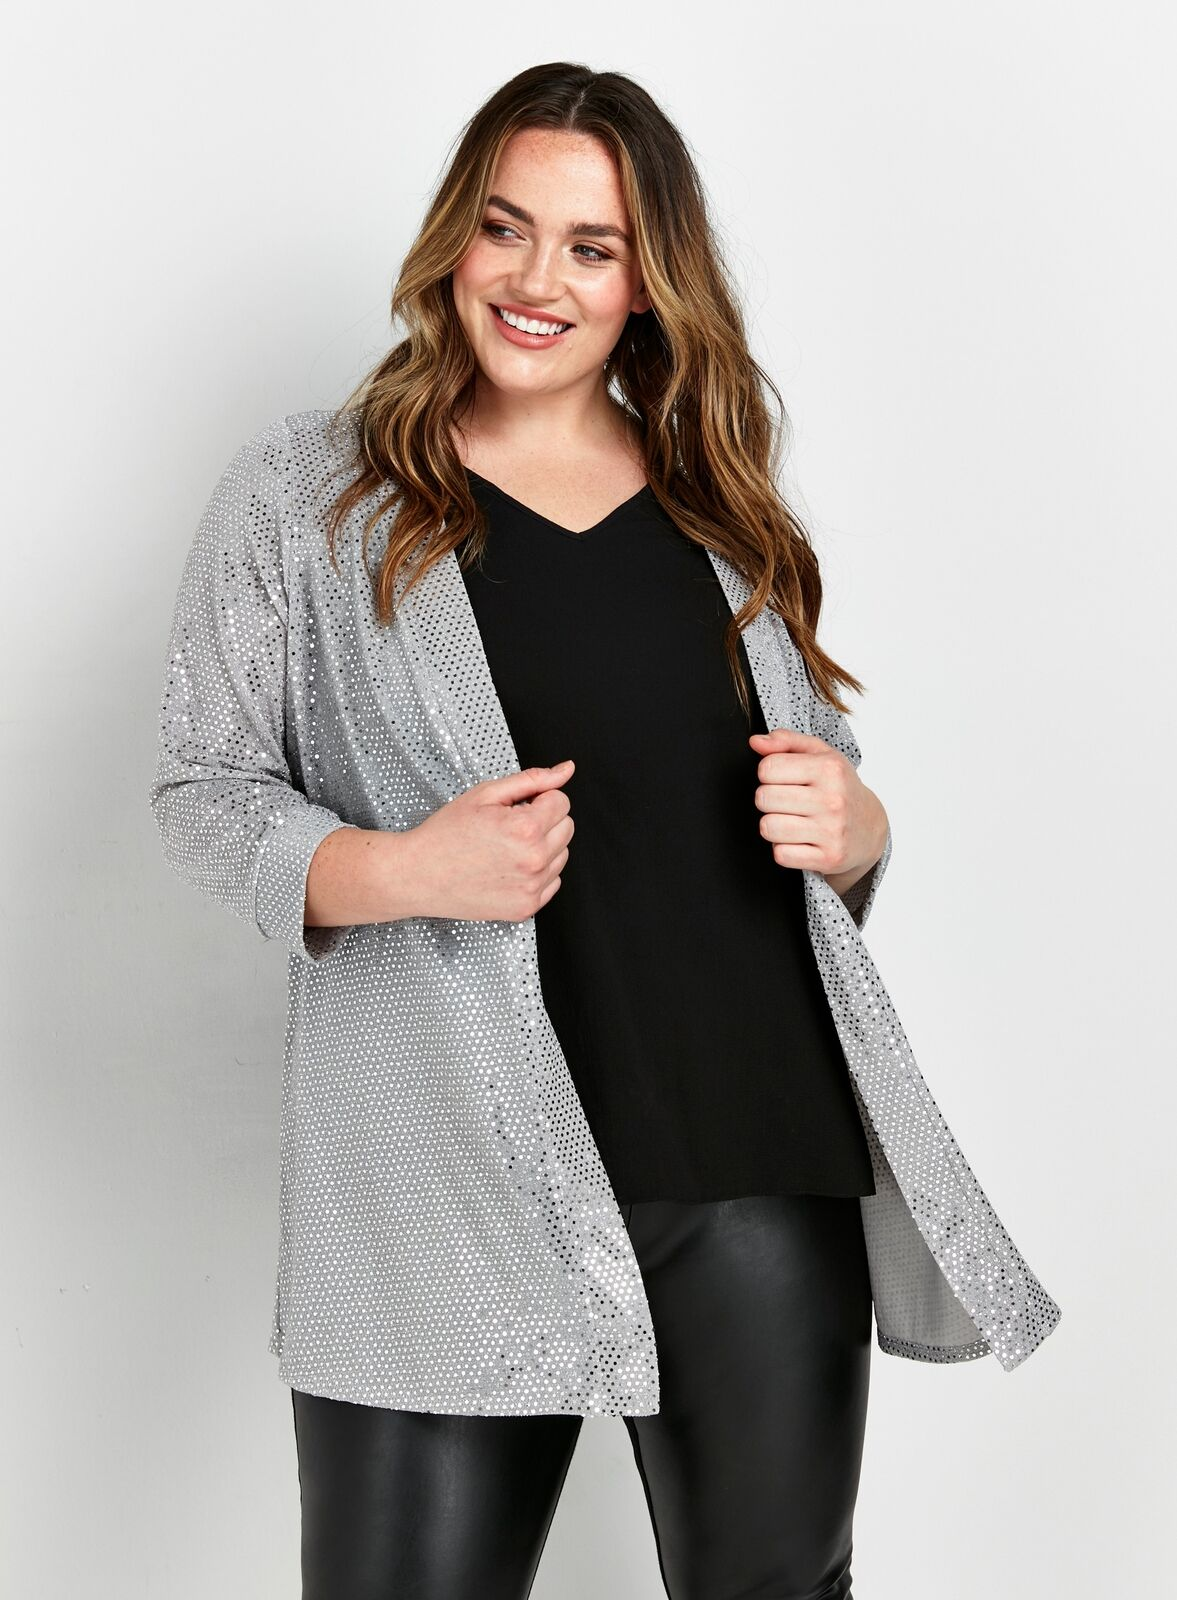 Evans Womens Silver Sequin Jacket Loose Fit Sparkly Fashion Cardigan Coat Mesh